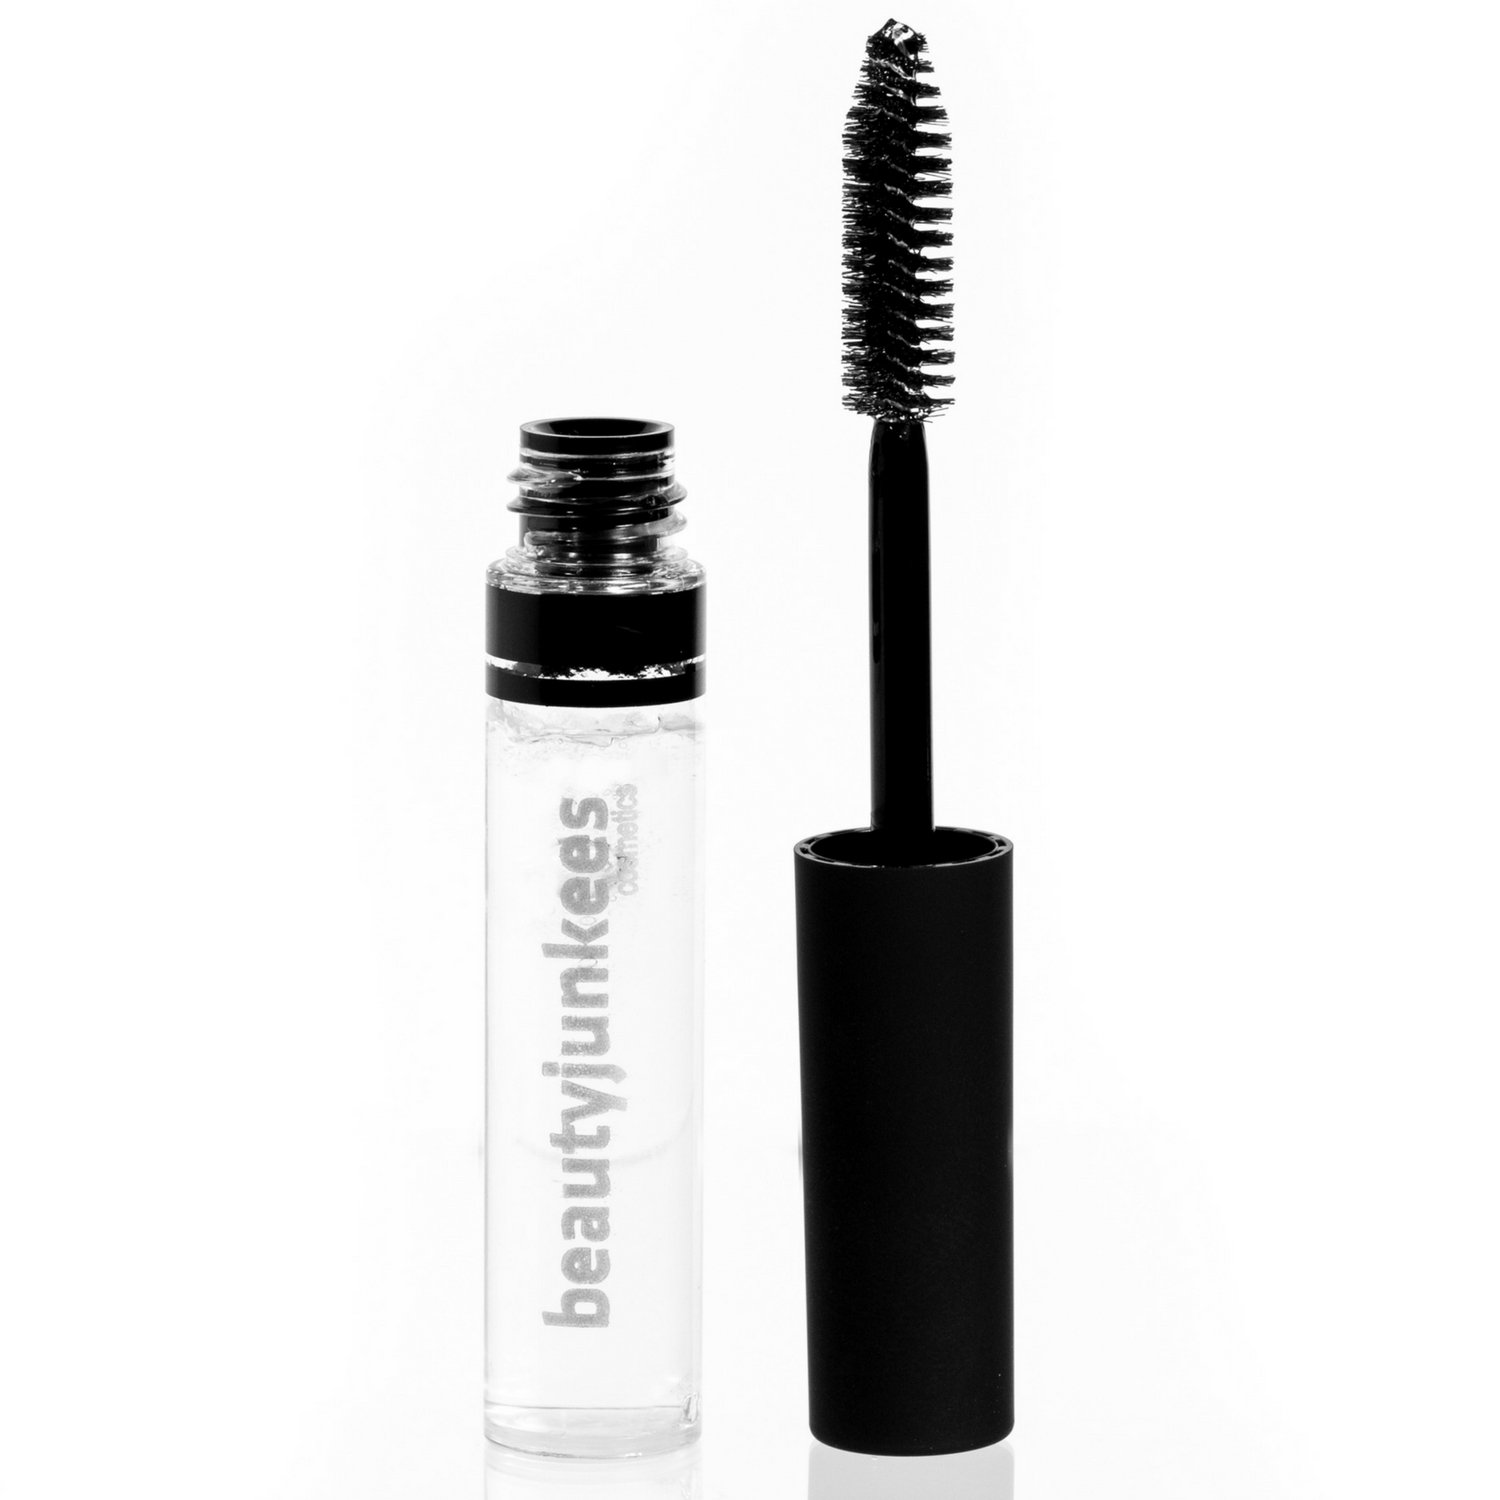 Clear Eyebrow Gel Brow Mascara - Best Browgel Filler for Natural Eye Brow Sculpting, Shaping, Volumizing, Setting, Sealer, Tamer, Safe for Eyelashes, Made in USA, Paraben Free, Maquillaje Para Cejas